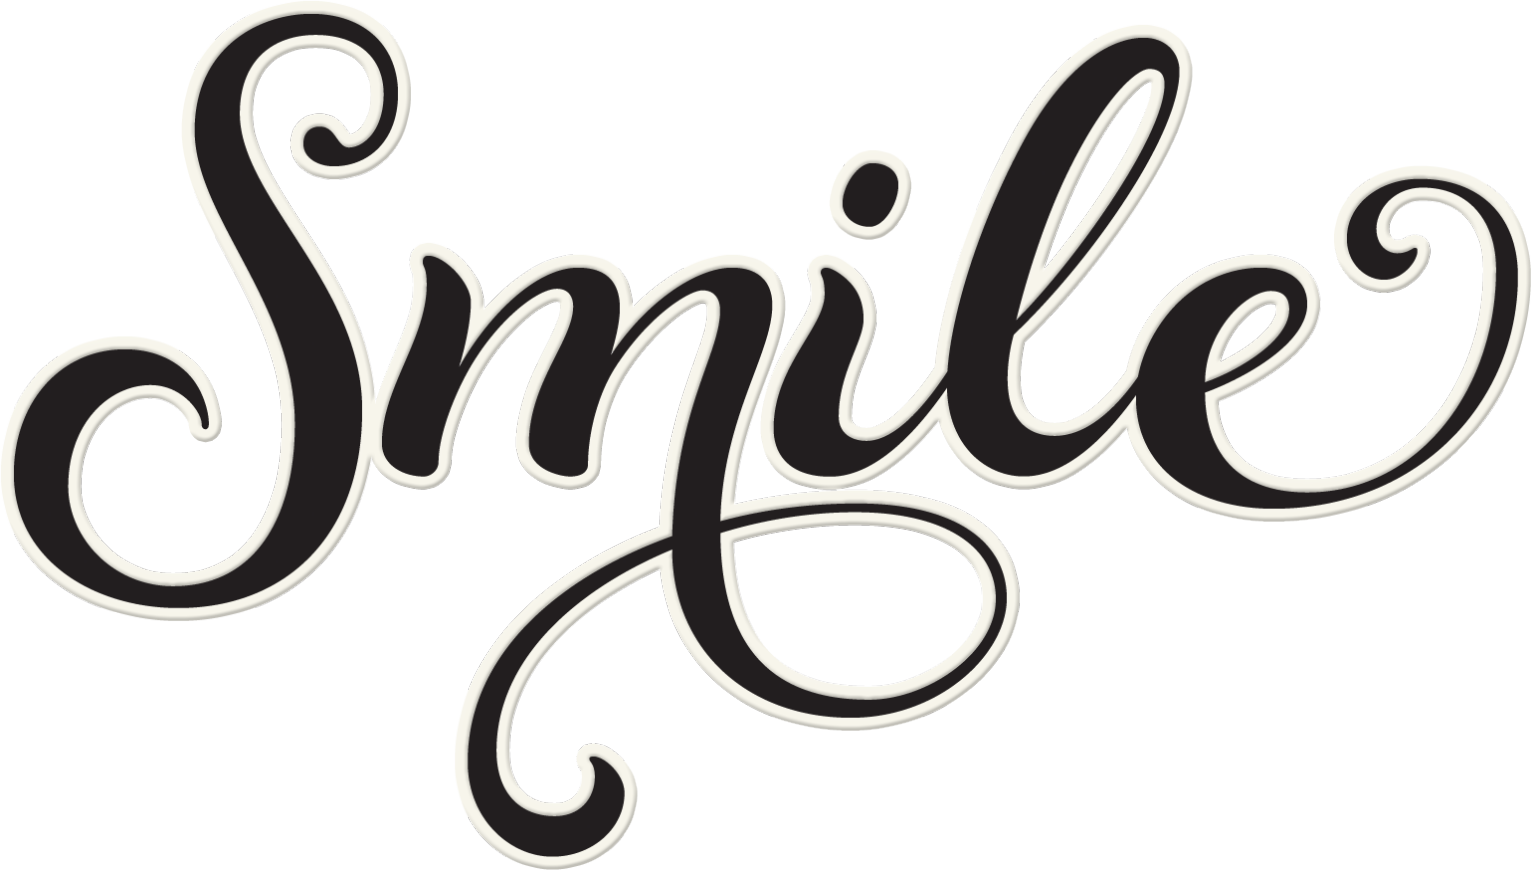 The Word Love In Cursive Kcroninbarrow Remembertosmile  Png